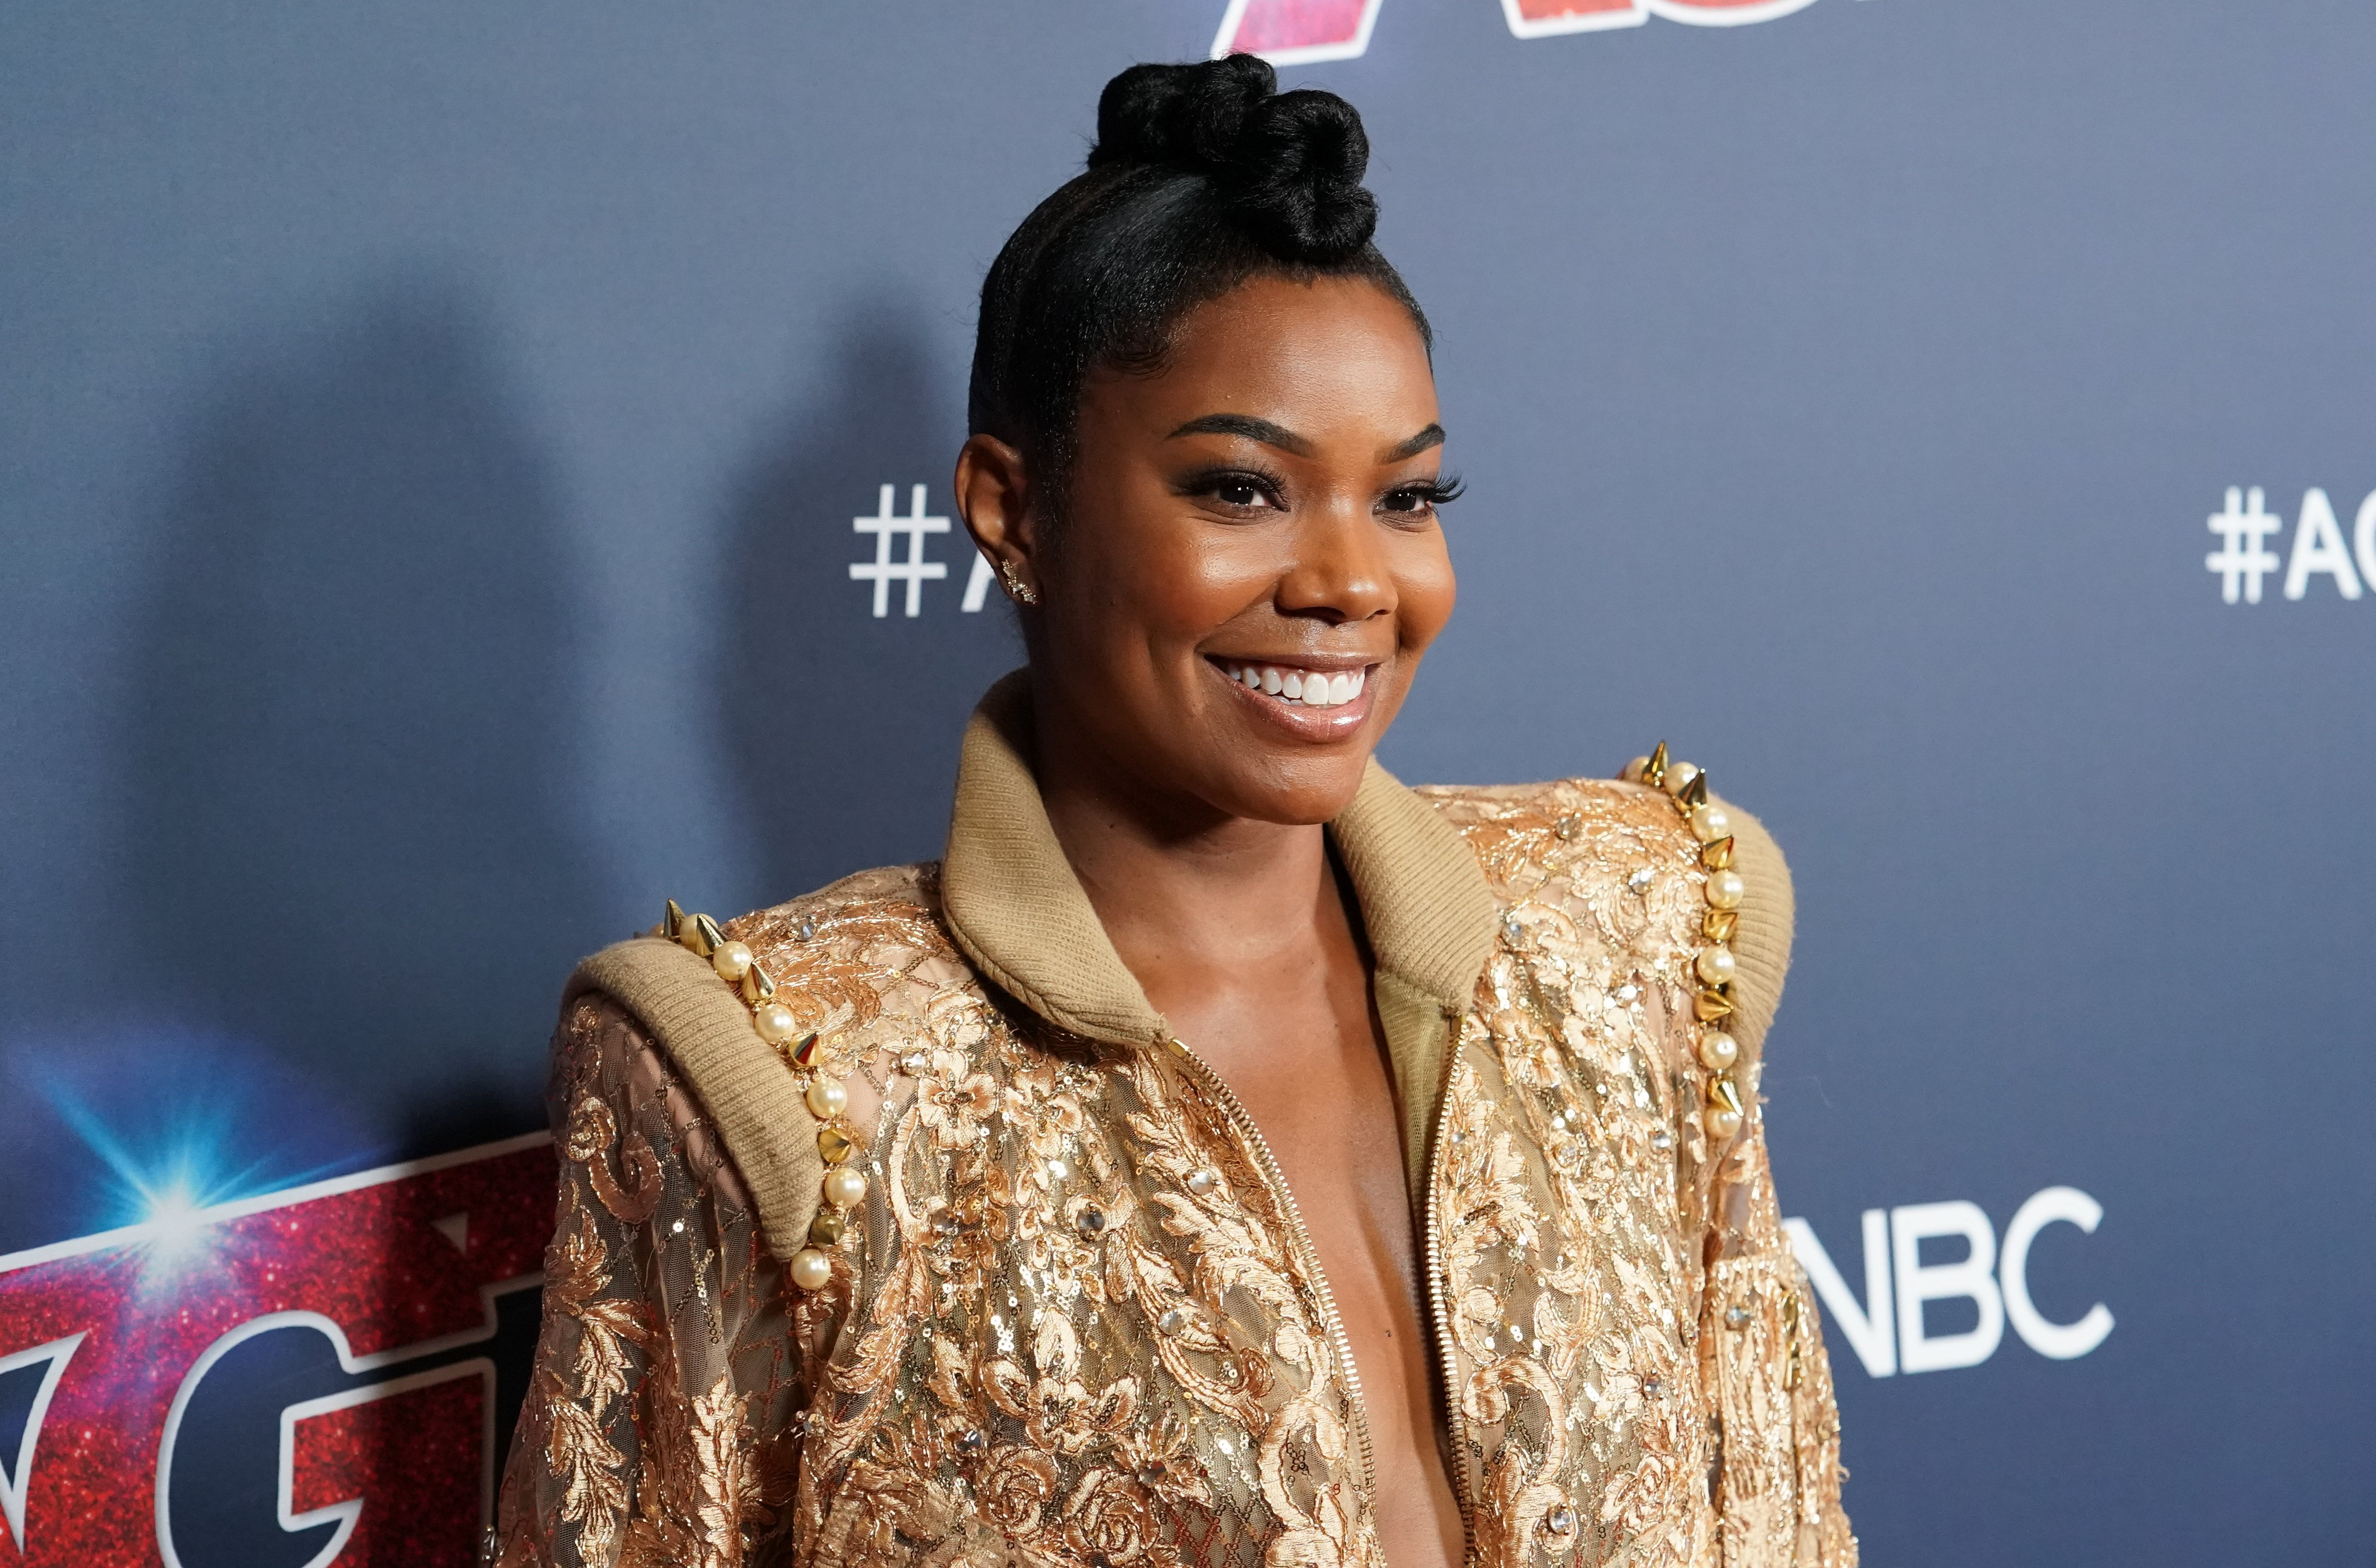 """Gabrielle Union attends """"America's Got Talent"""" Season 14 Live Show Red Carpet at Dolby Theatre on September 03, 2019, in Hollywood, California. 